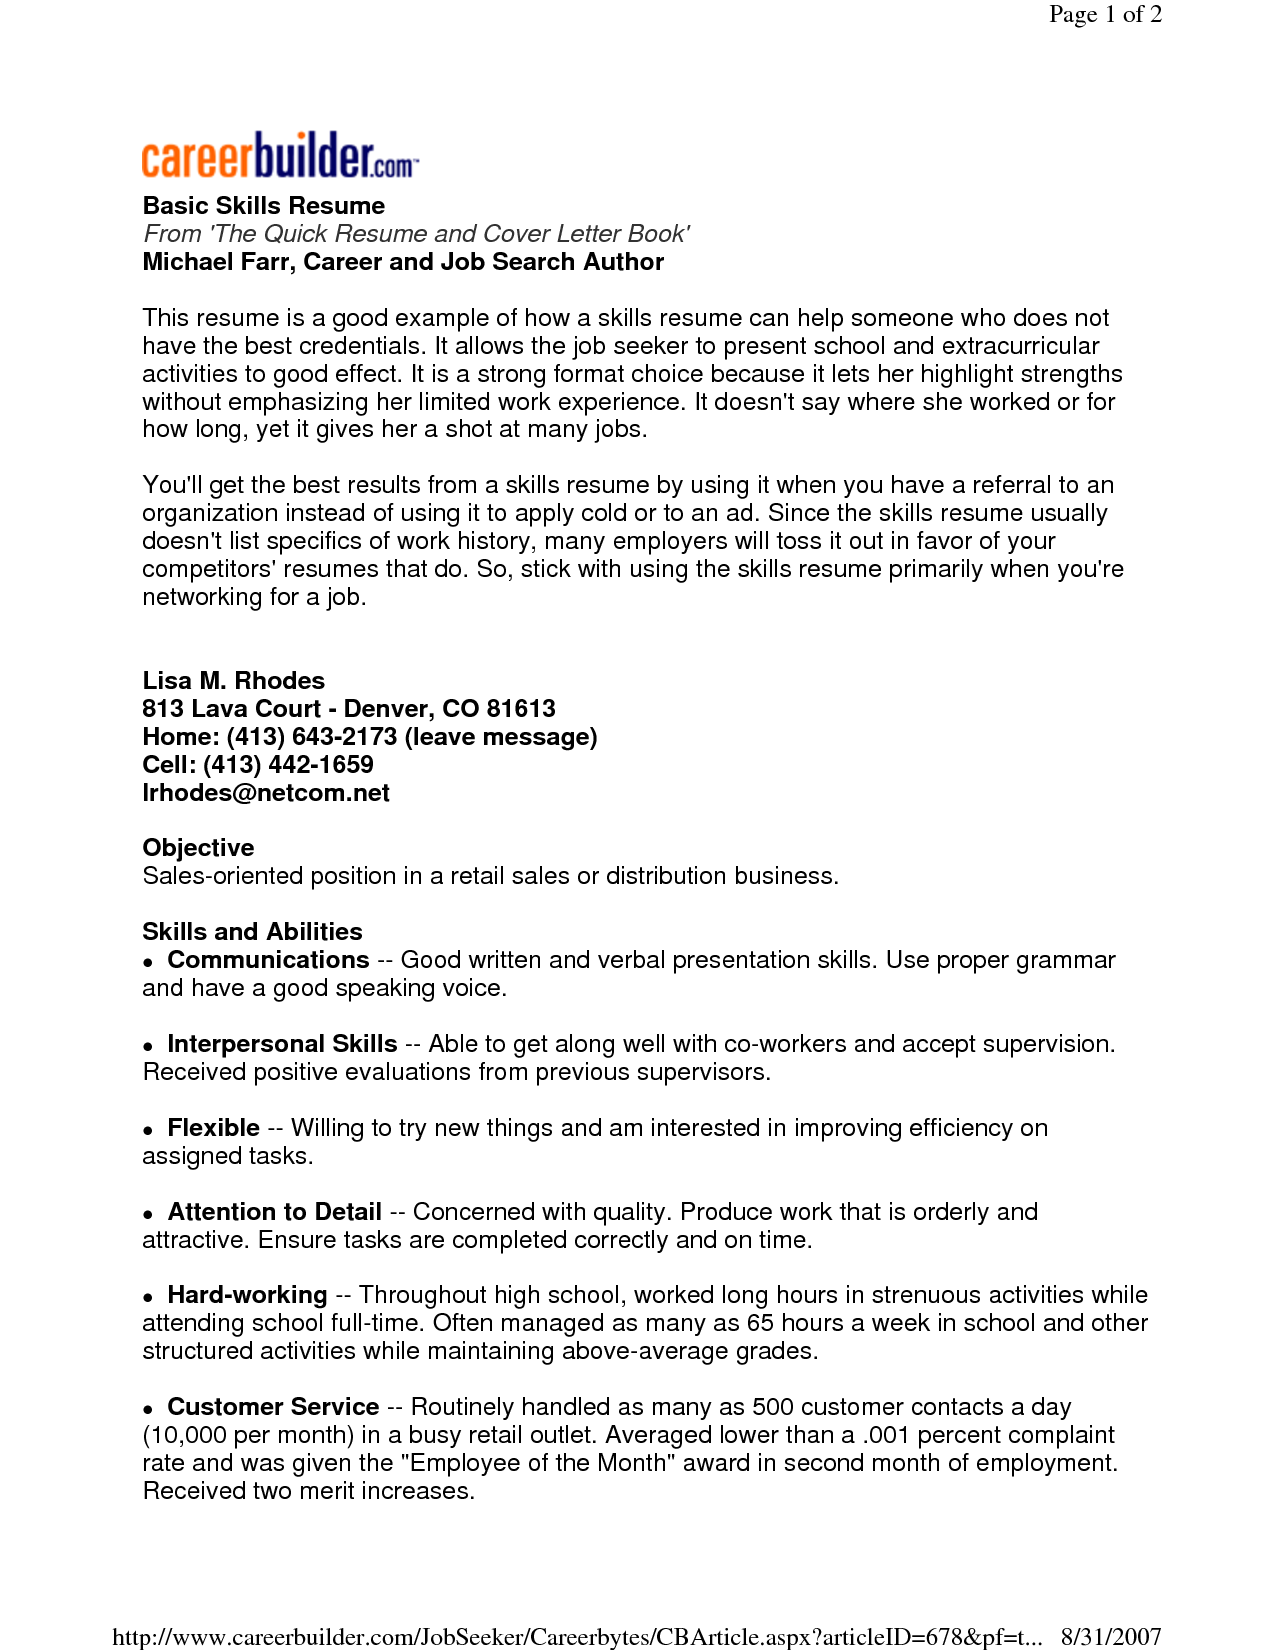 great resume samples find here the sample resume that best fits your profile order find here